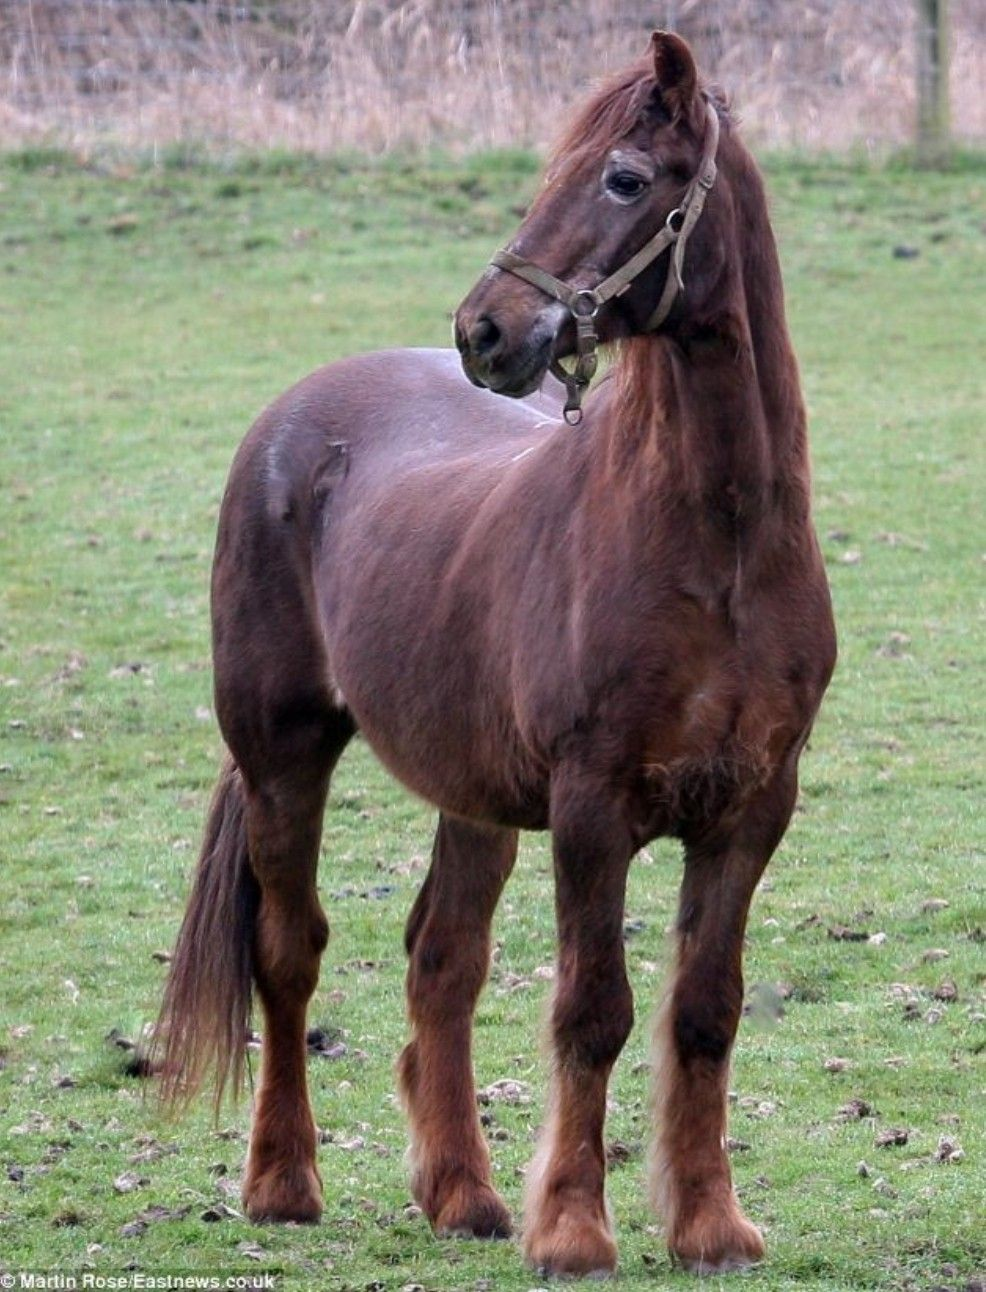 Oldest Horse In The World Shayne 51 Just Died With Images